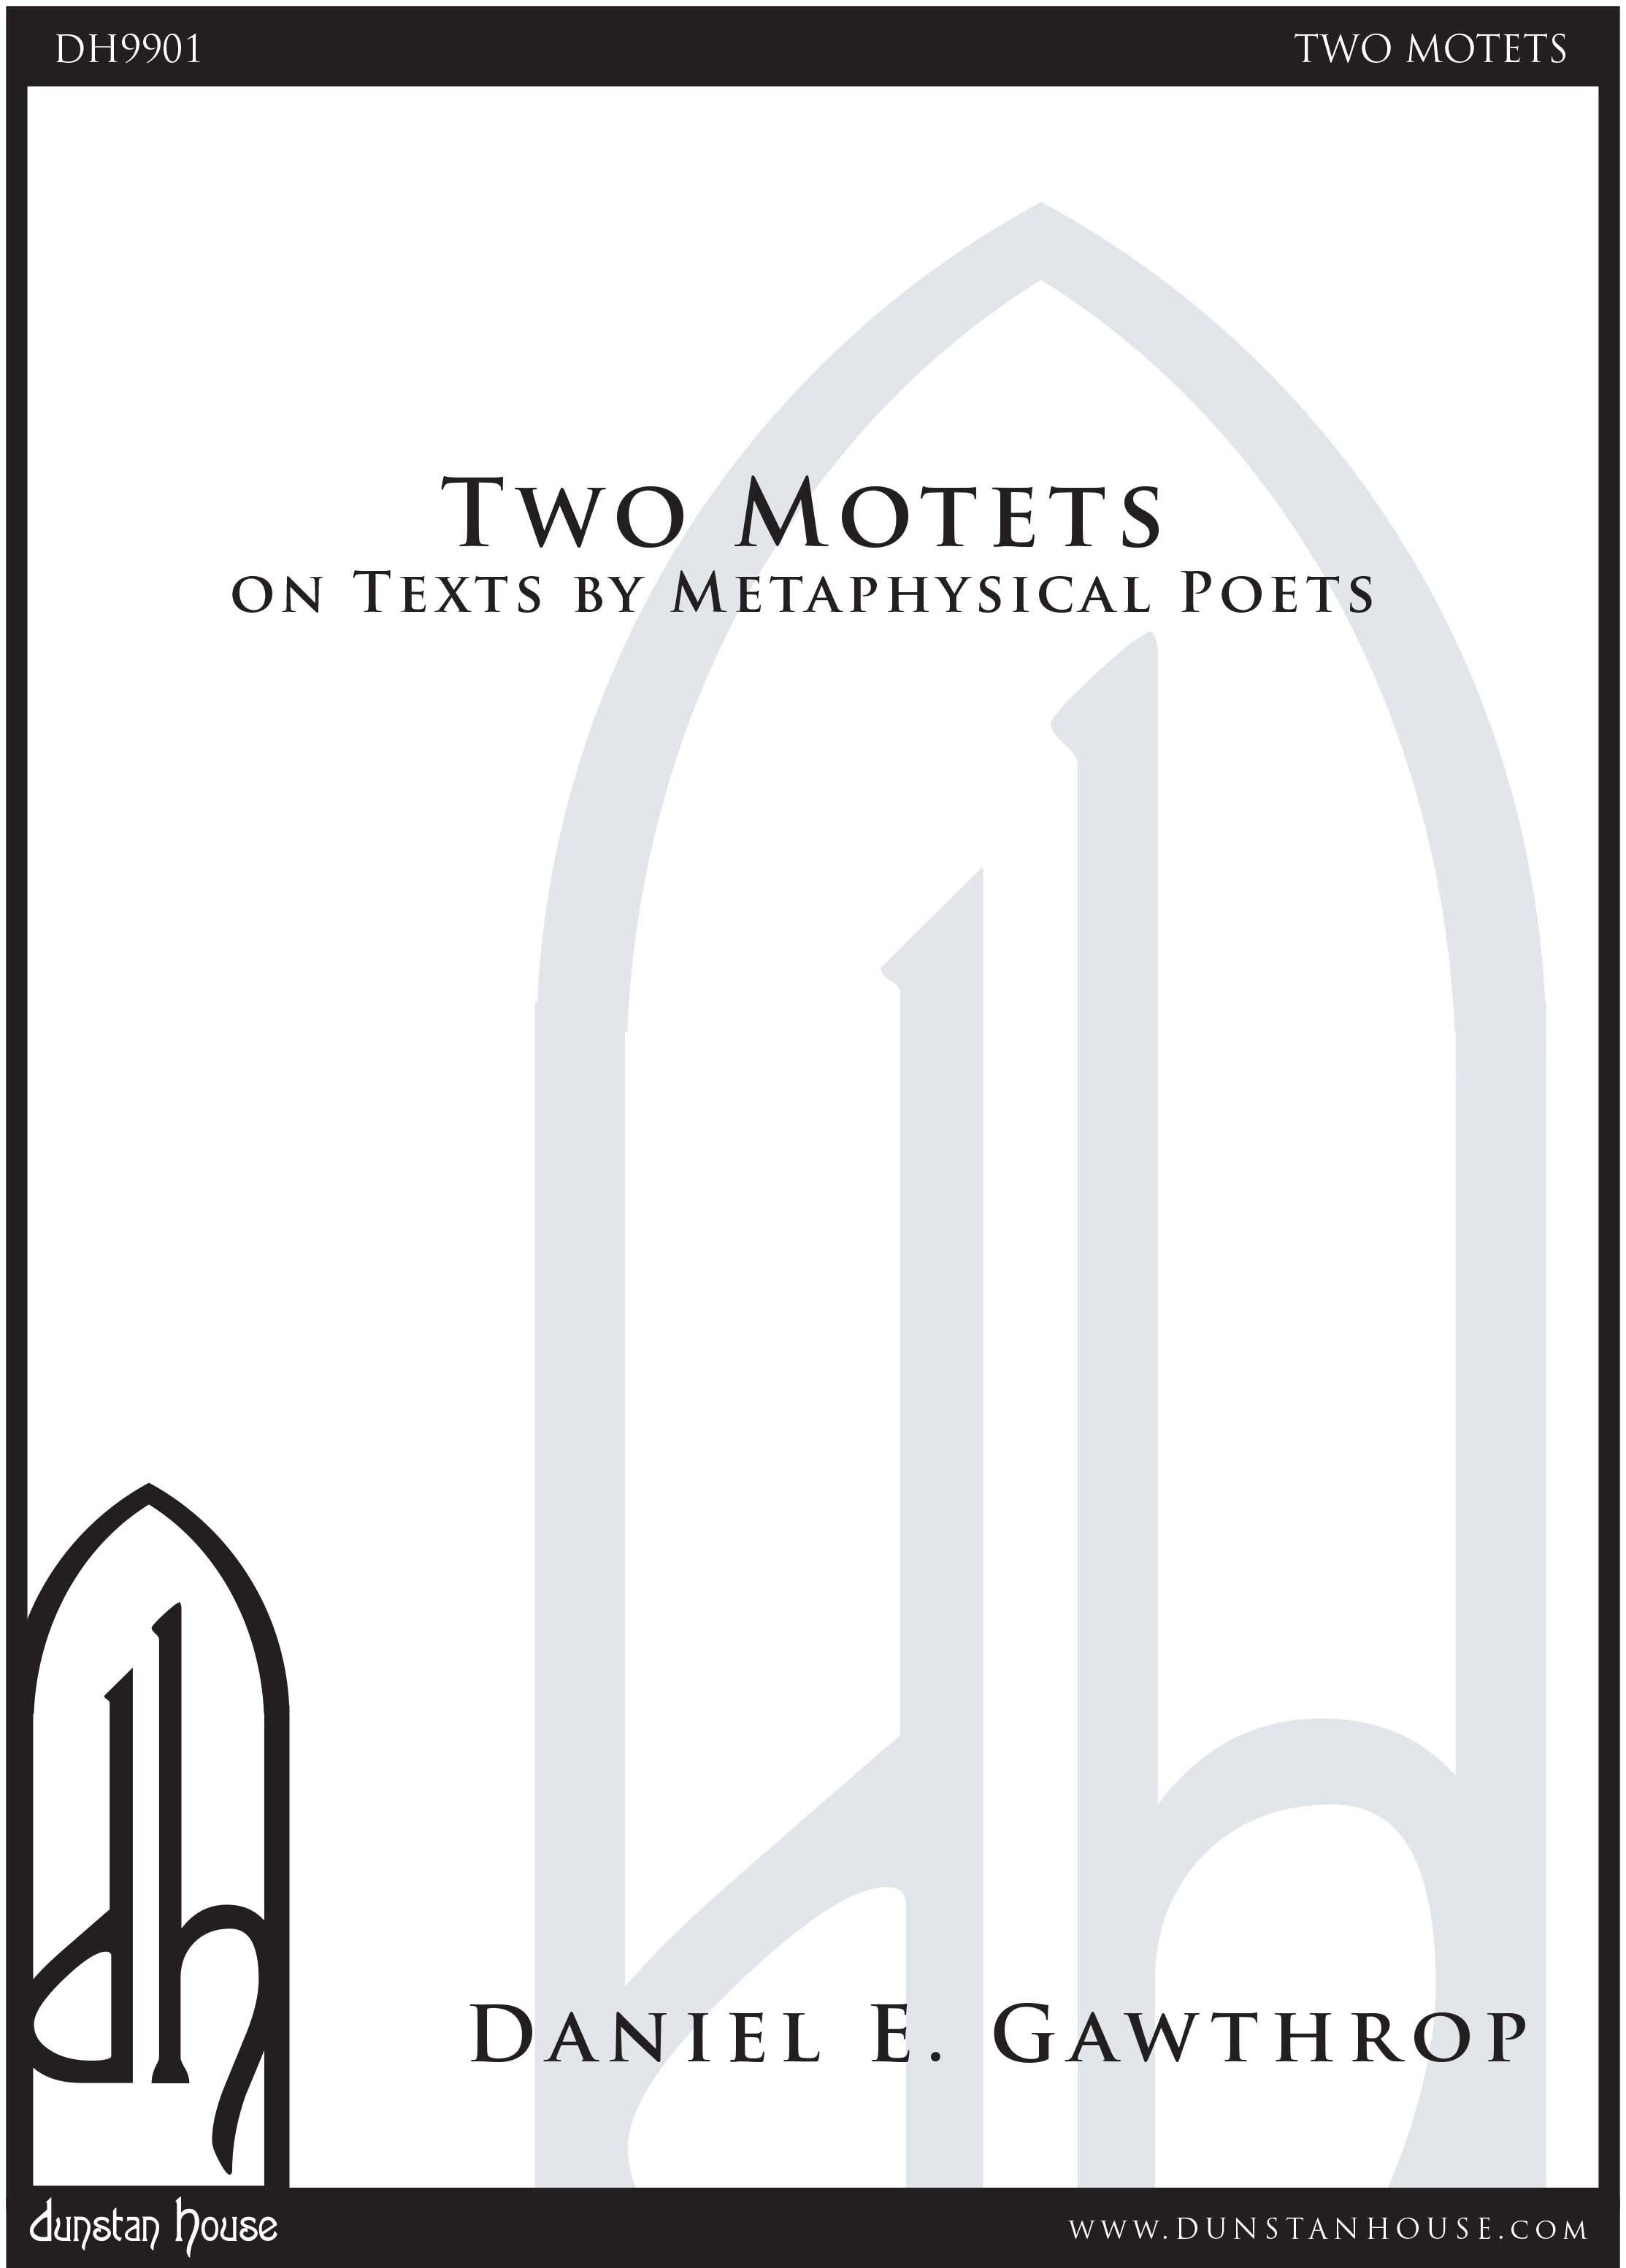 Two Motets on Texts by Metaphysical Poets